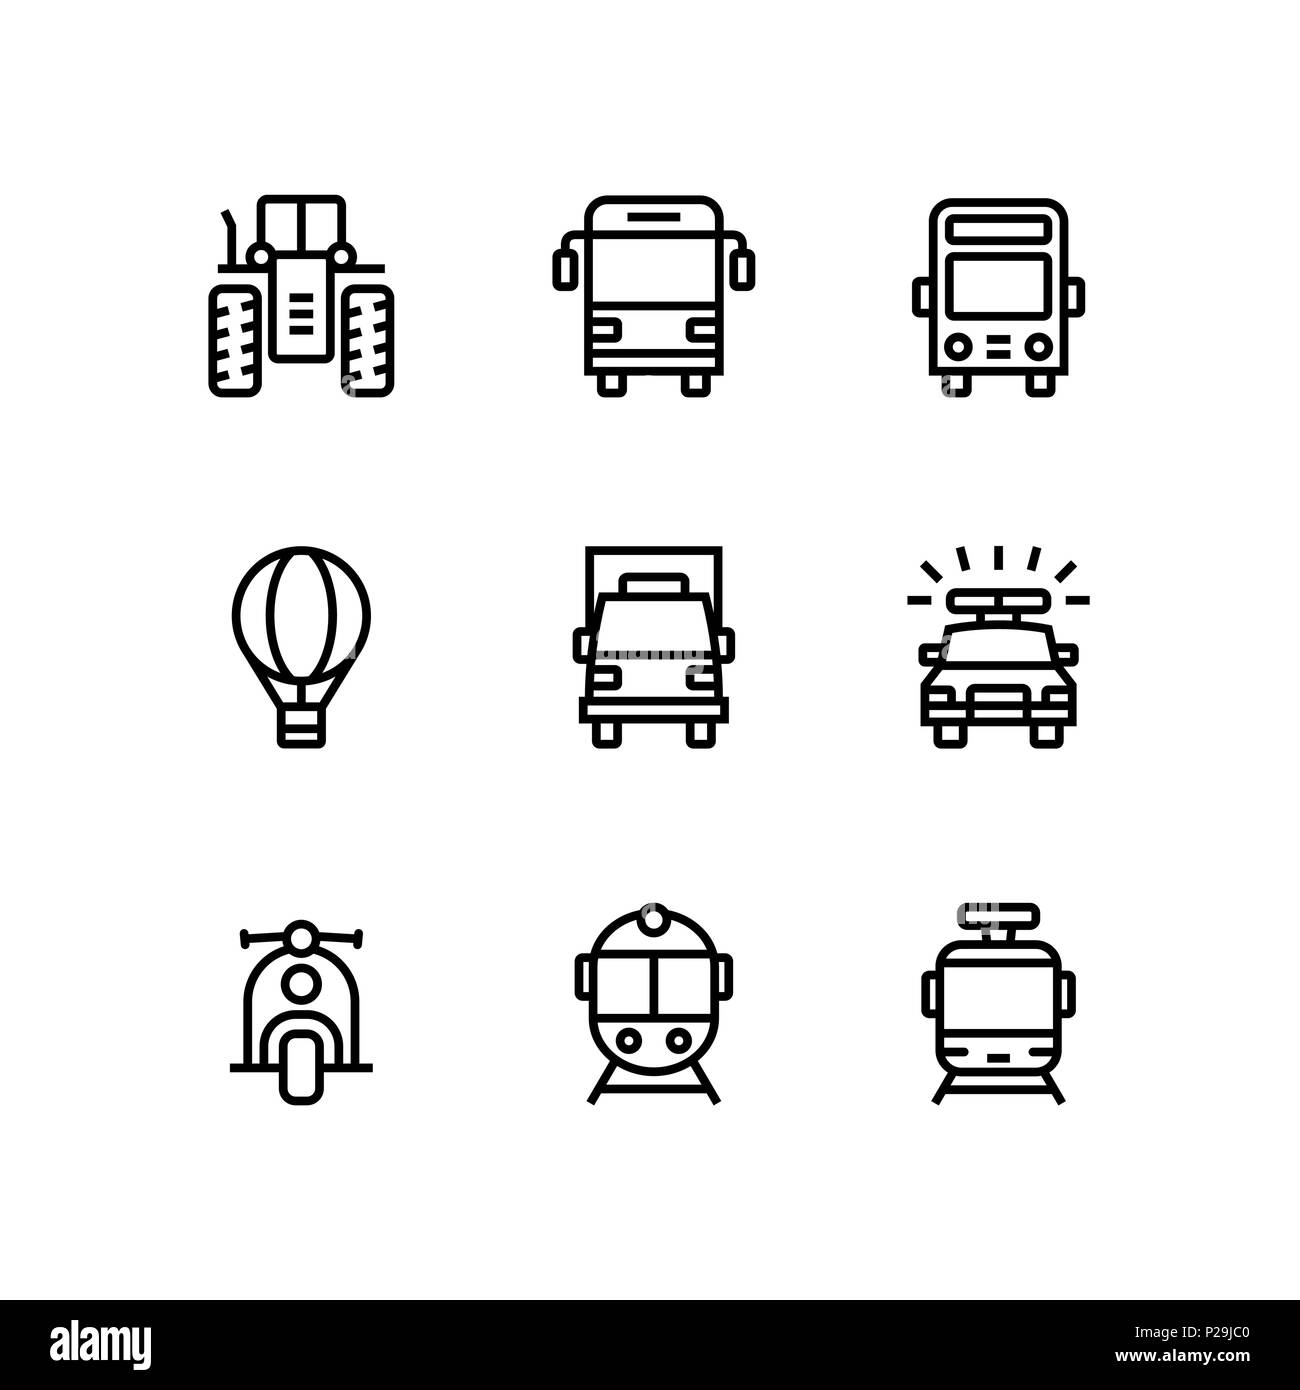 Transport, vehicle, truck and car simple vector icons for web and mobile design pack 2 - Stock Image